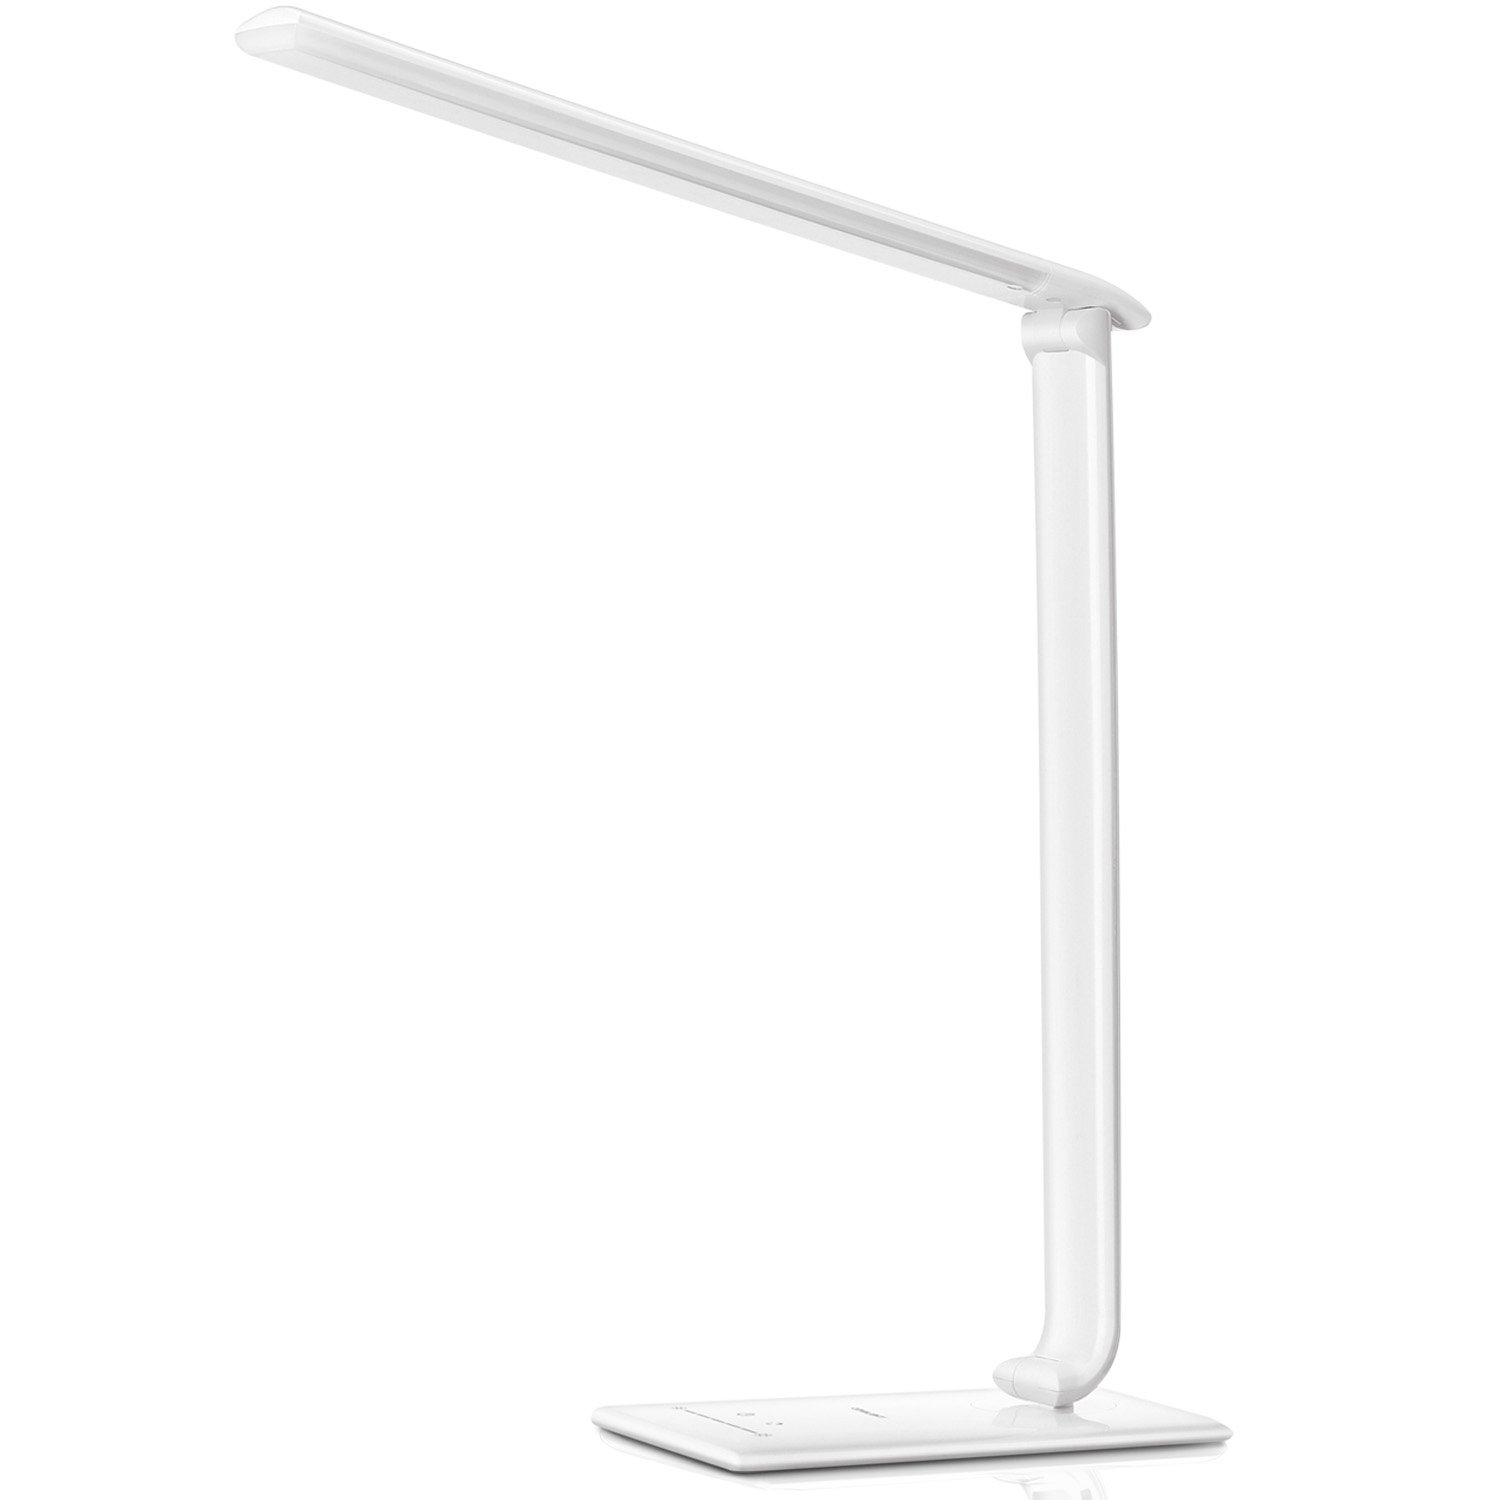 Ominilight LED Desk Lamp, Dimmable Desk Lamp with USB Charging Port, Folding Reading Lamp, 7-Level Dimmer, 5-Lighting Mode, Touch Control, for Office, Bedroom, College, Back-to-school (White)